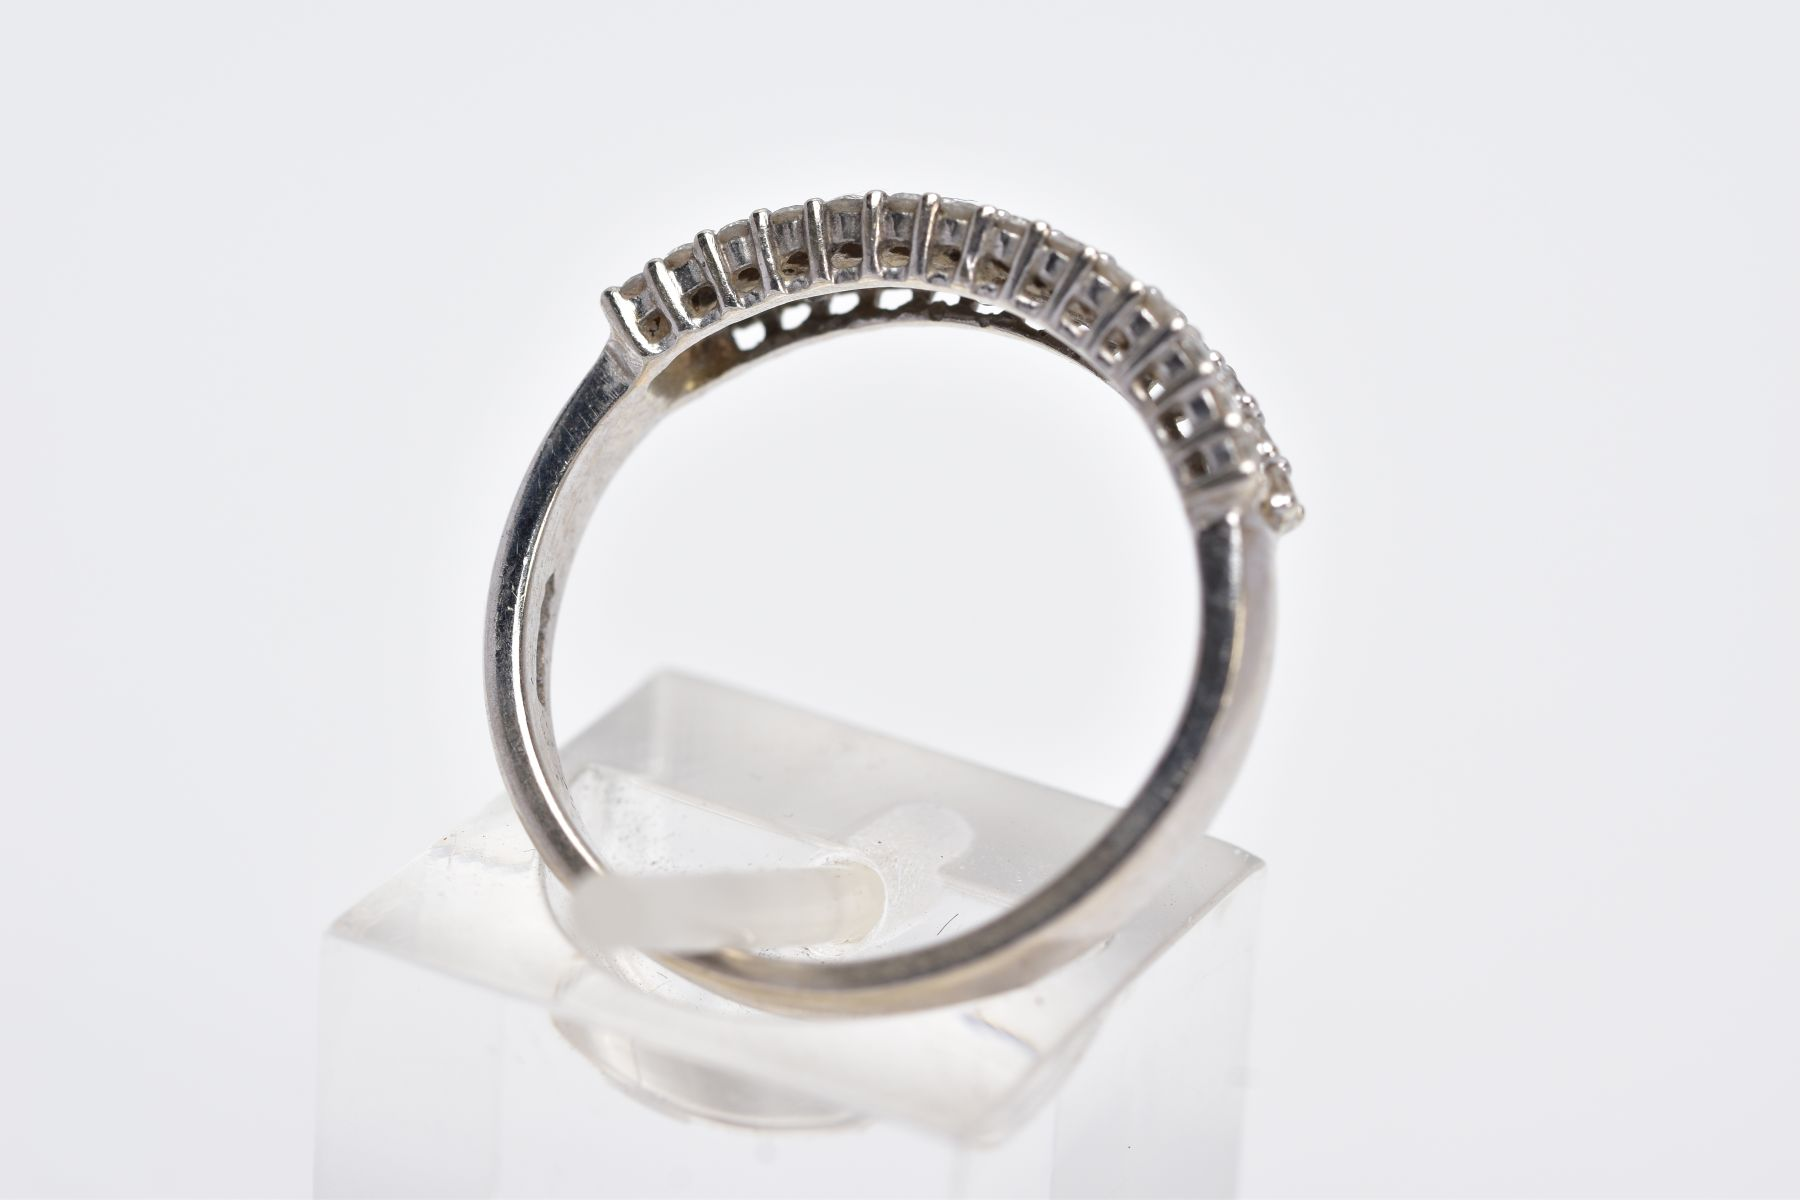 A 9CT WHITE GOLD HALFHOOP DIAMOND RING, designed with a central row of rectangular cut diamonds - Image 3 of 3